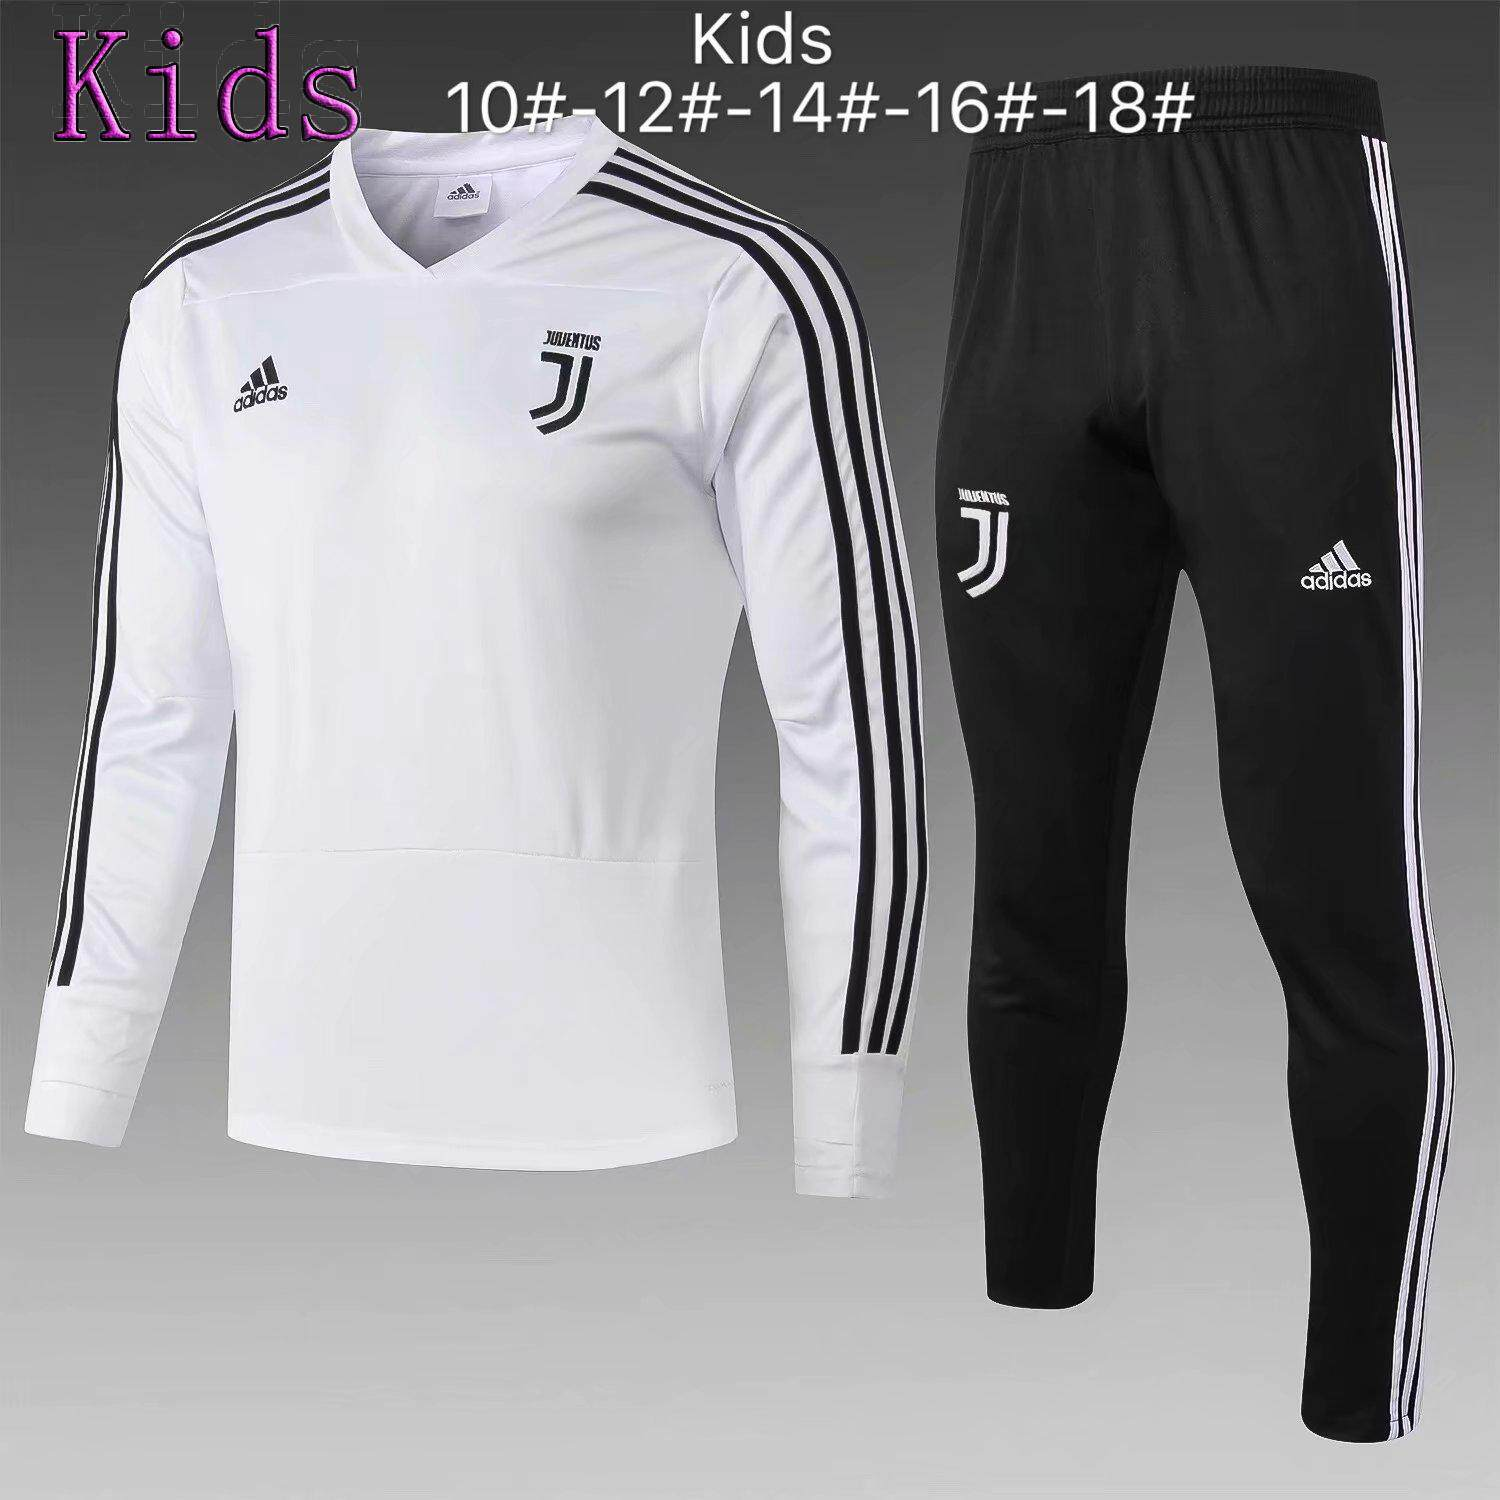 dec2e9c98 Boys Football Jersey. 376 items found in Football. Kids 2019/20 New Juventus  V Neck Training Suit White